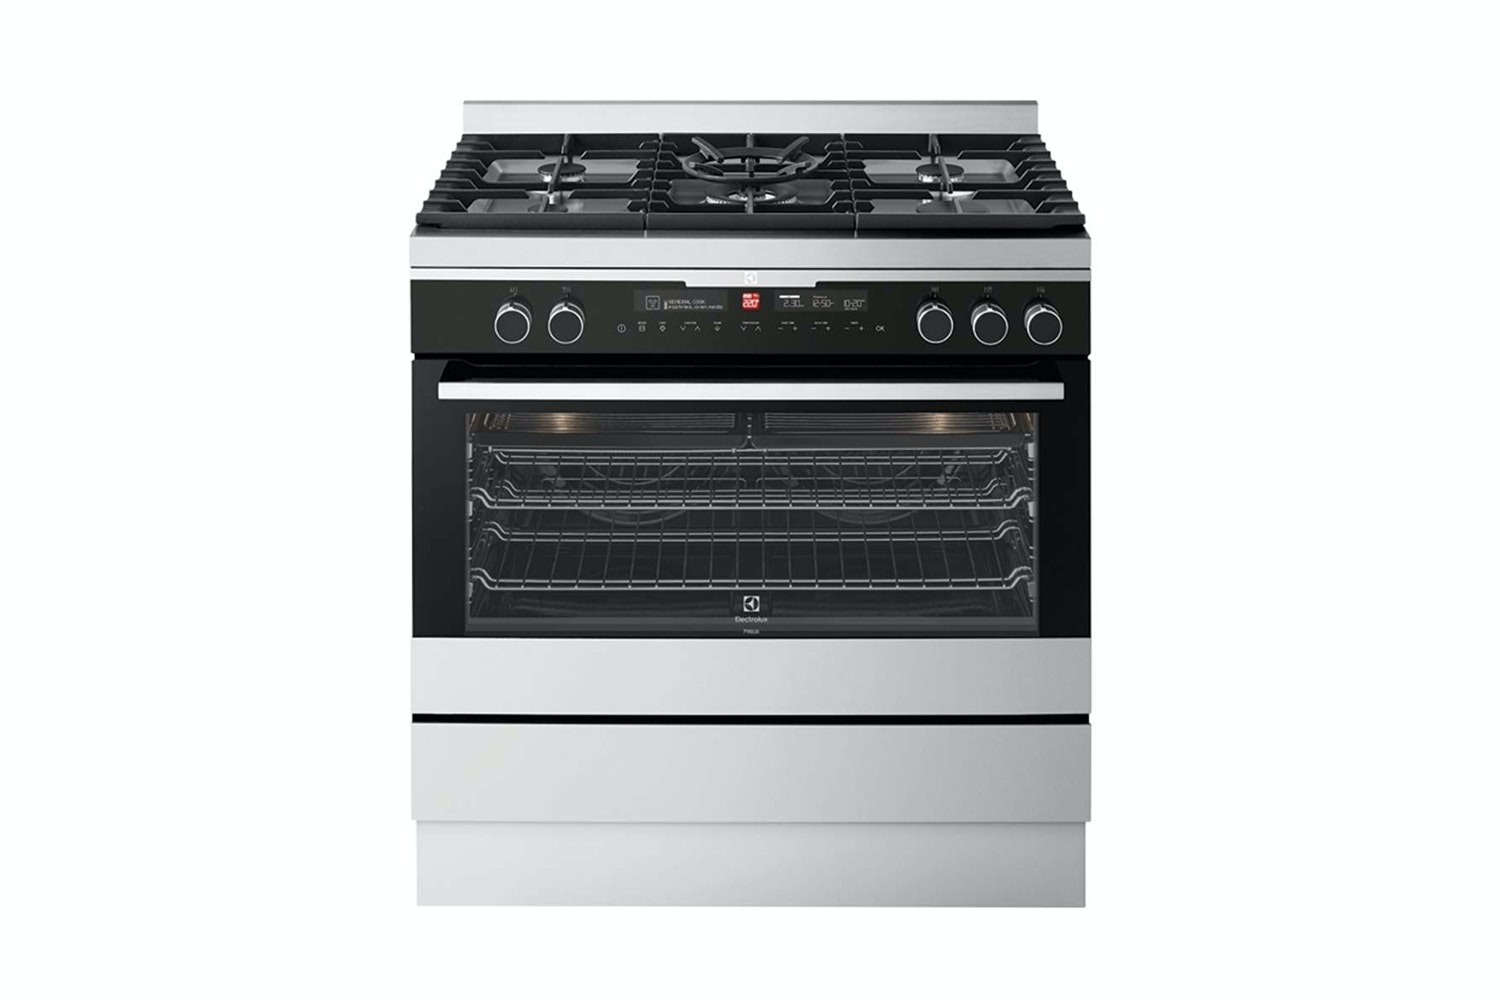 electrolux 90cm gas cooktop. electrolux 90cm pyrolytic oven with gas cooktop a